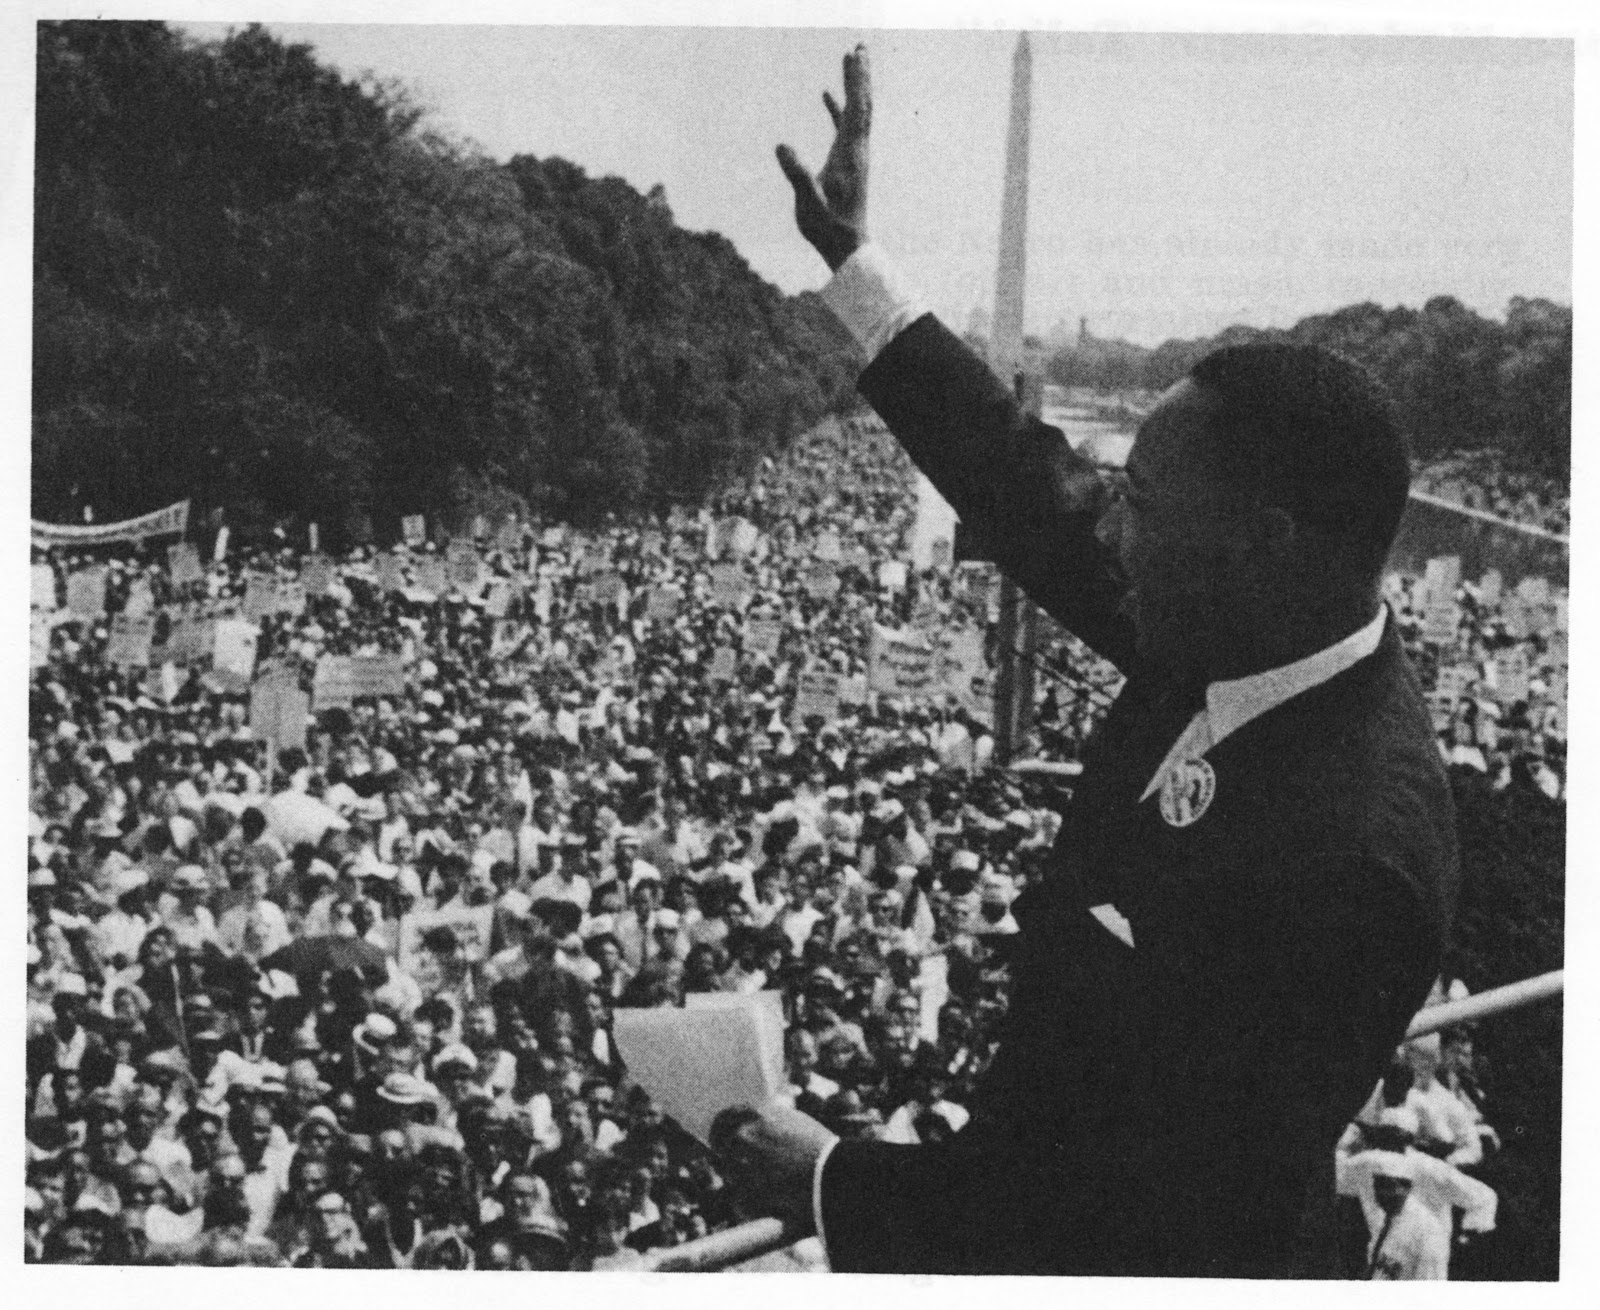 mlk i have a dream speech date dr martin luther king i have a dream speech date